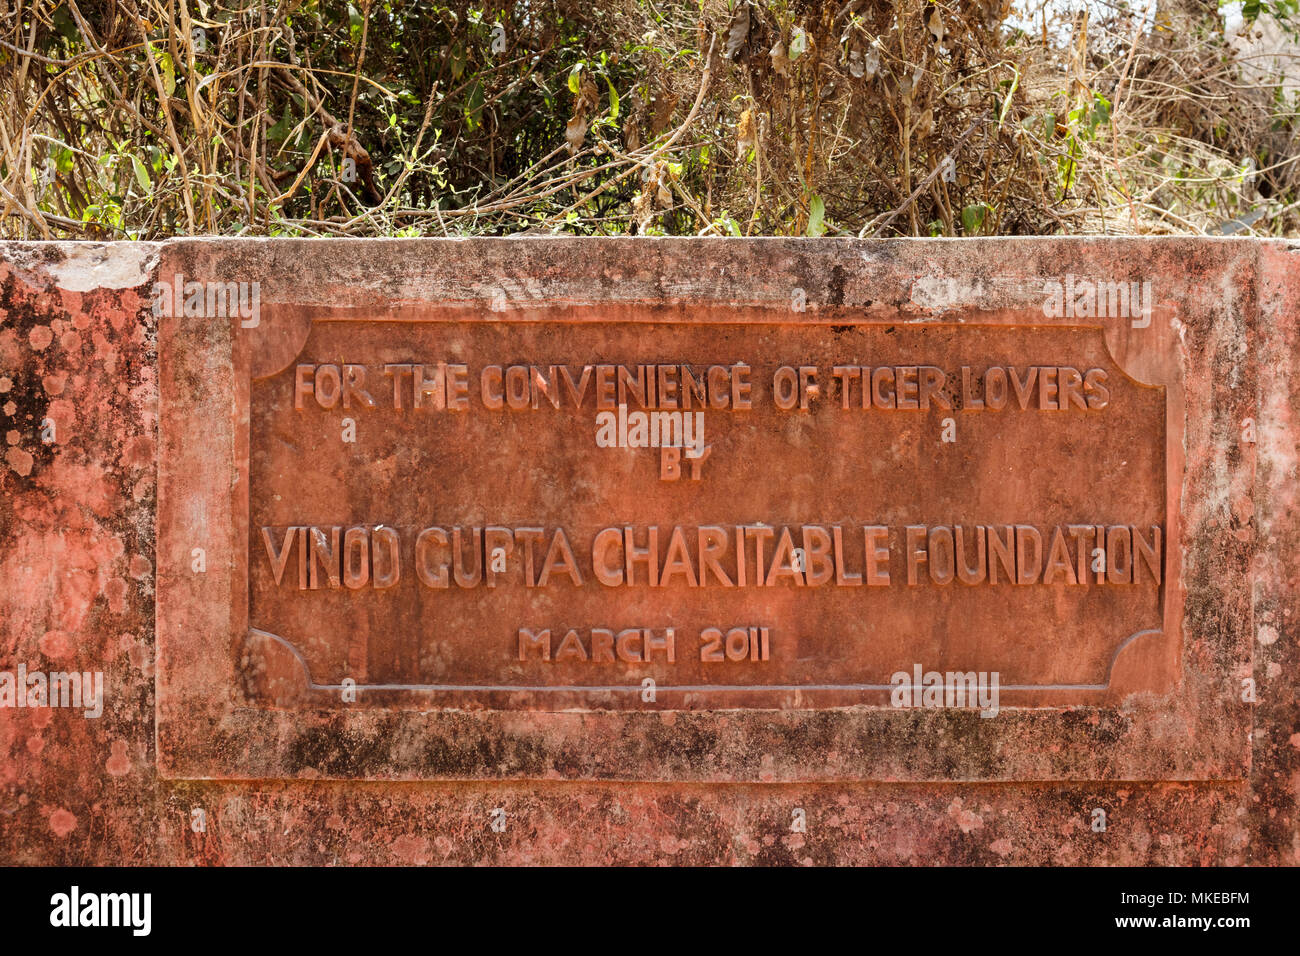 Stone sign inscribed with 'For the convenience of tiger lovers by Vinod Gupta Charitable Foundation', Ranthambore National Park, Rajasthan, India - Stock Image